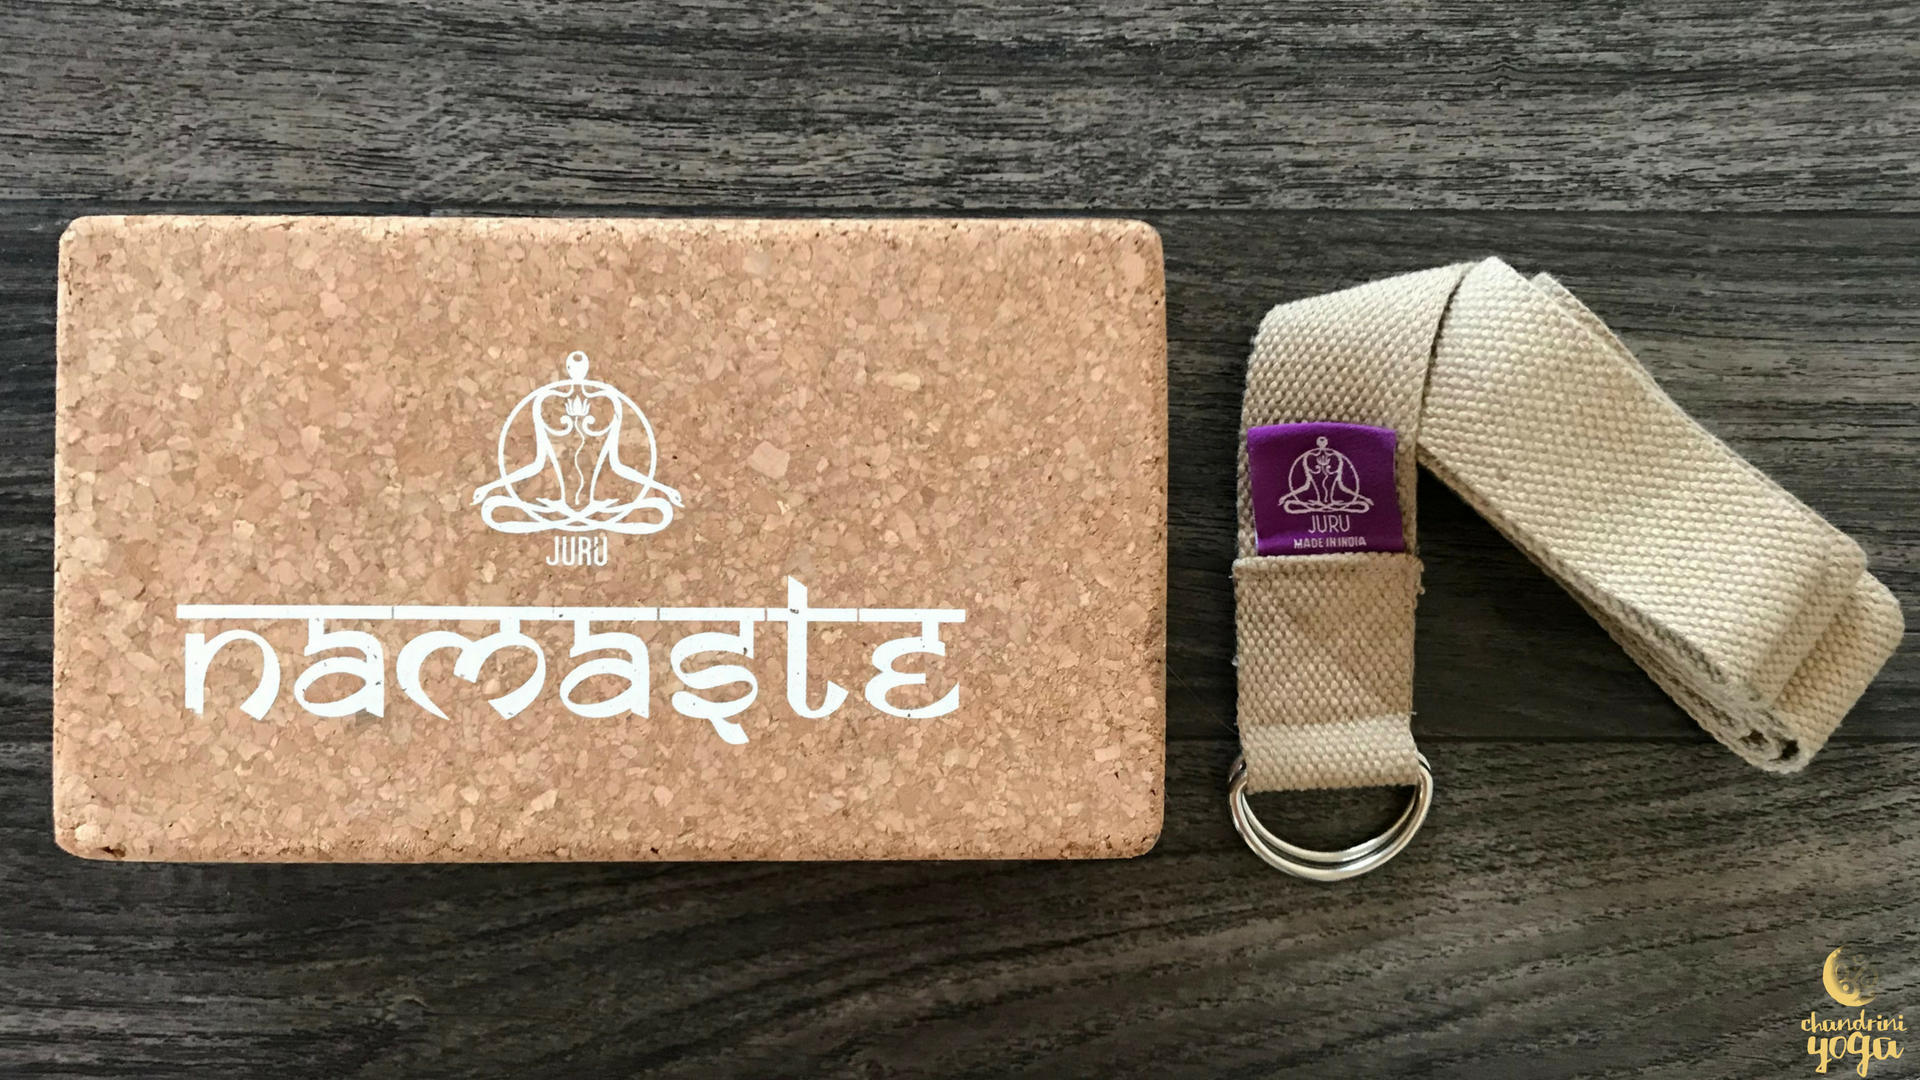 JURU Cork Yoga Block  and  Cotton Yoga Strap  from  JURU Yoga .